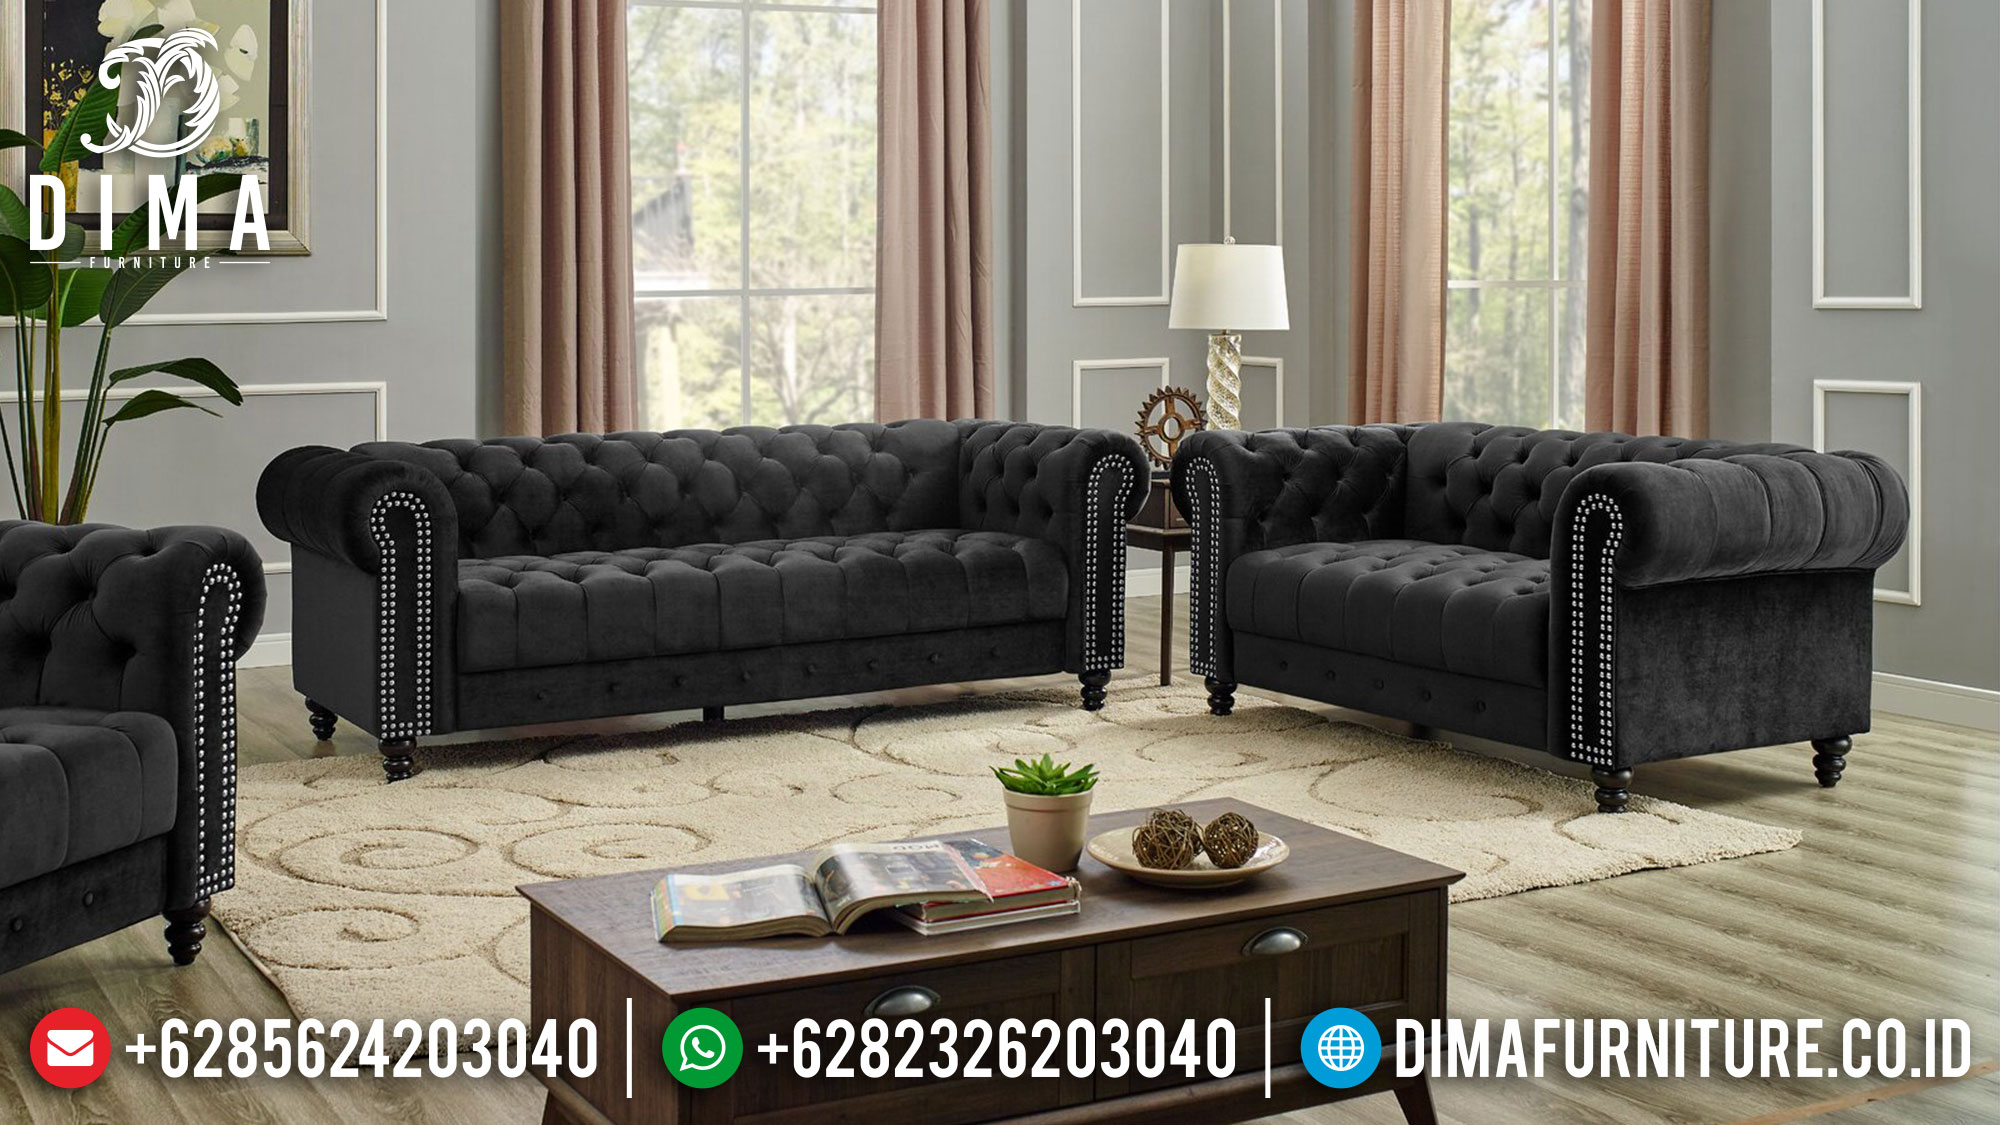 Jual Sofa Tamu Minimalis Jepara 3 2 1 + Meja New Chesterfield Design Elegant MM-1089